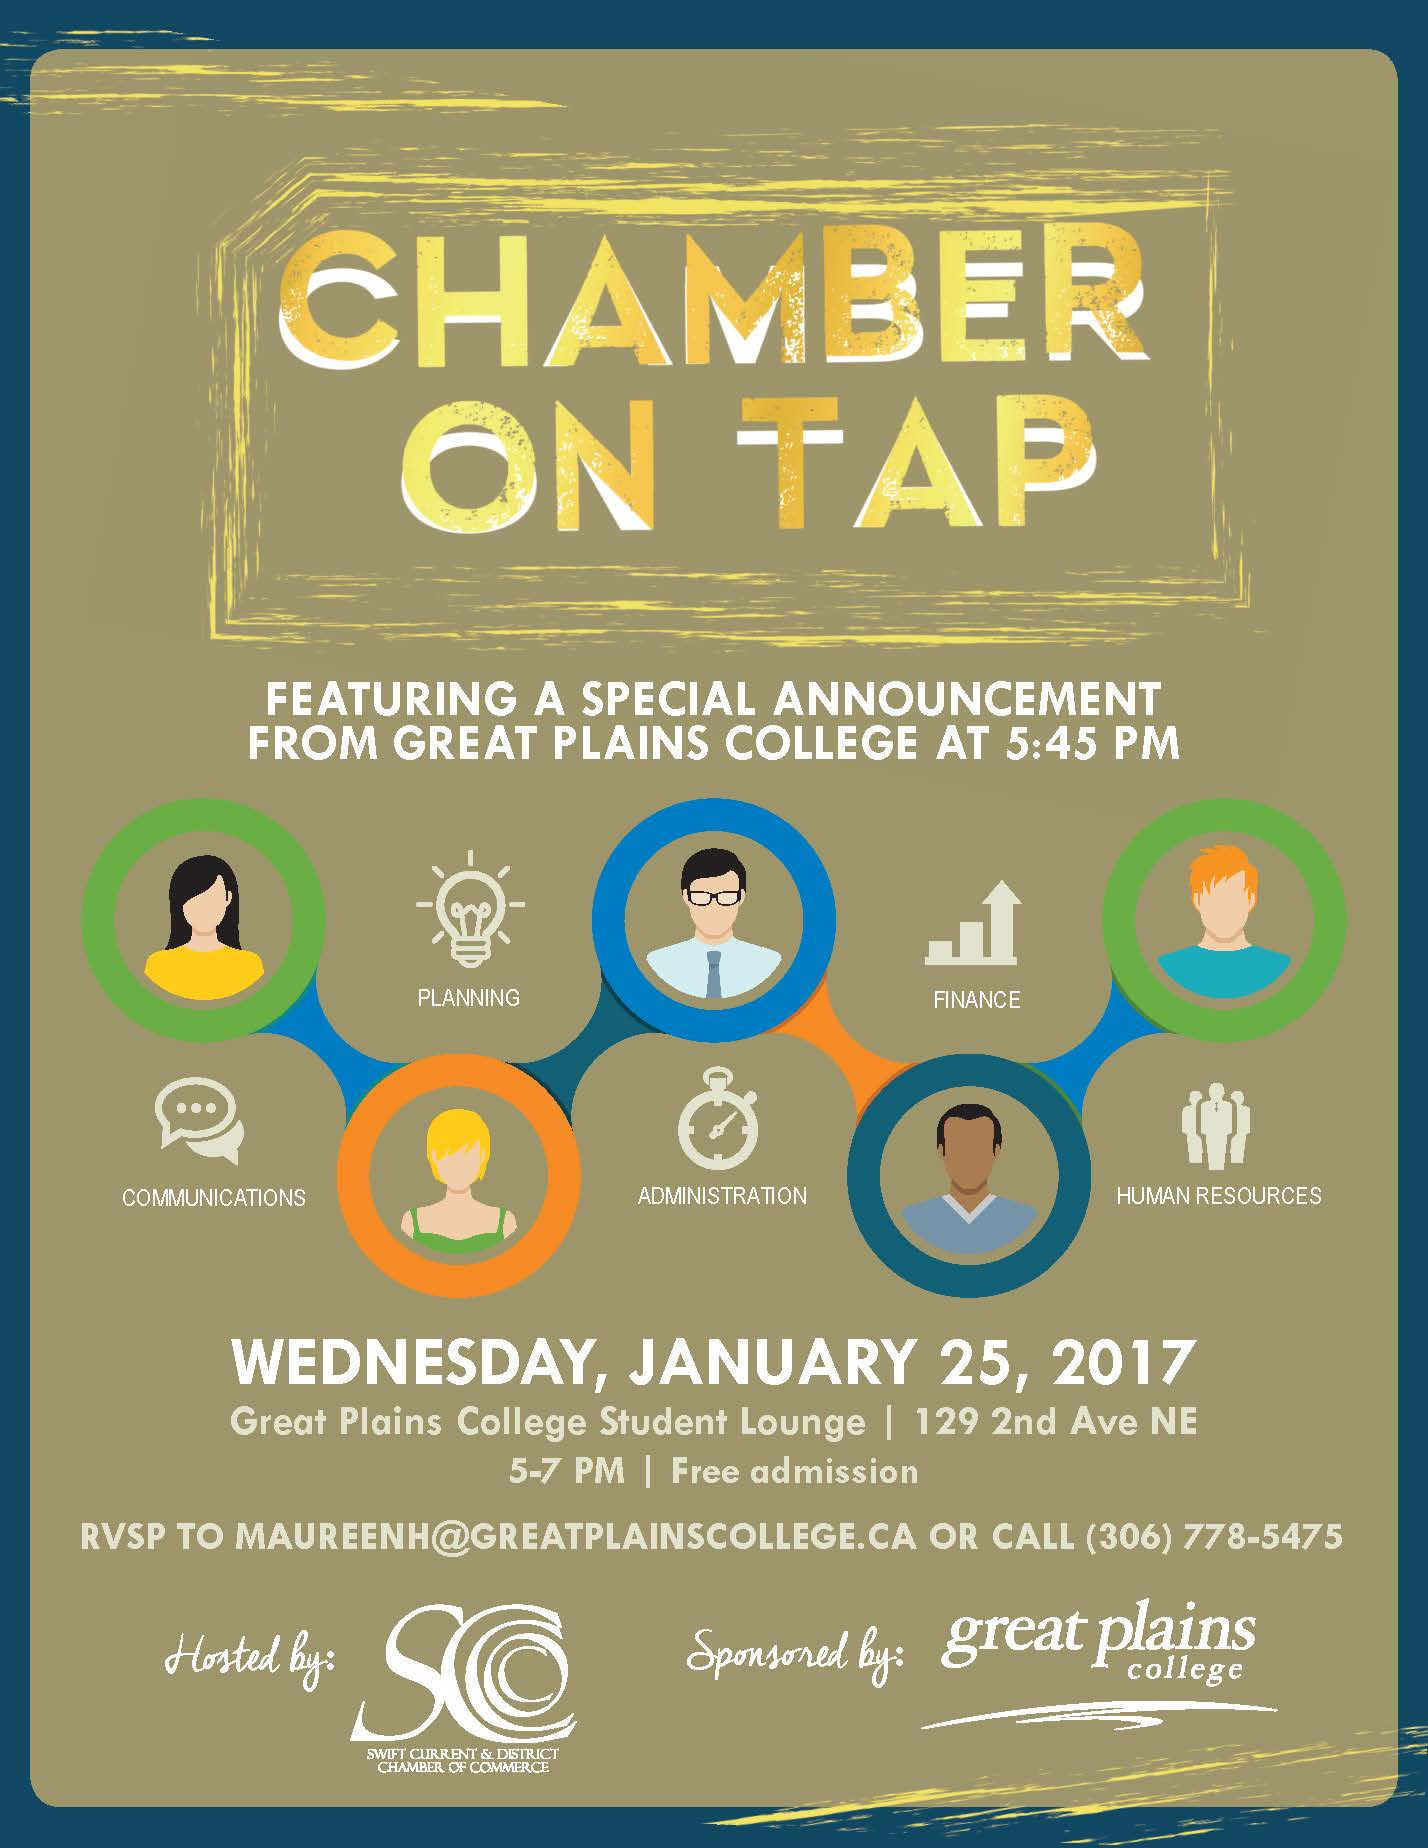 GPC-Chamber-on-Tap-poster-Jan-25-2017.jpg